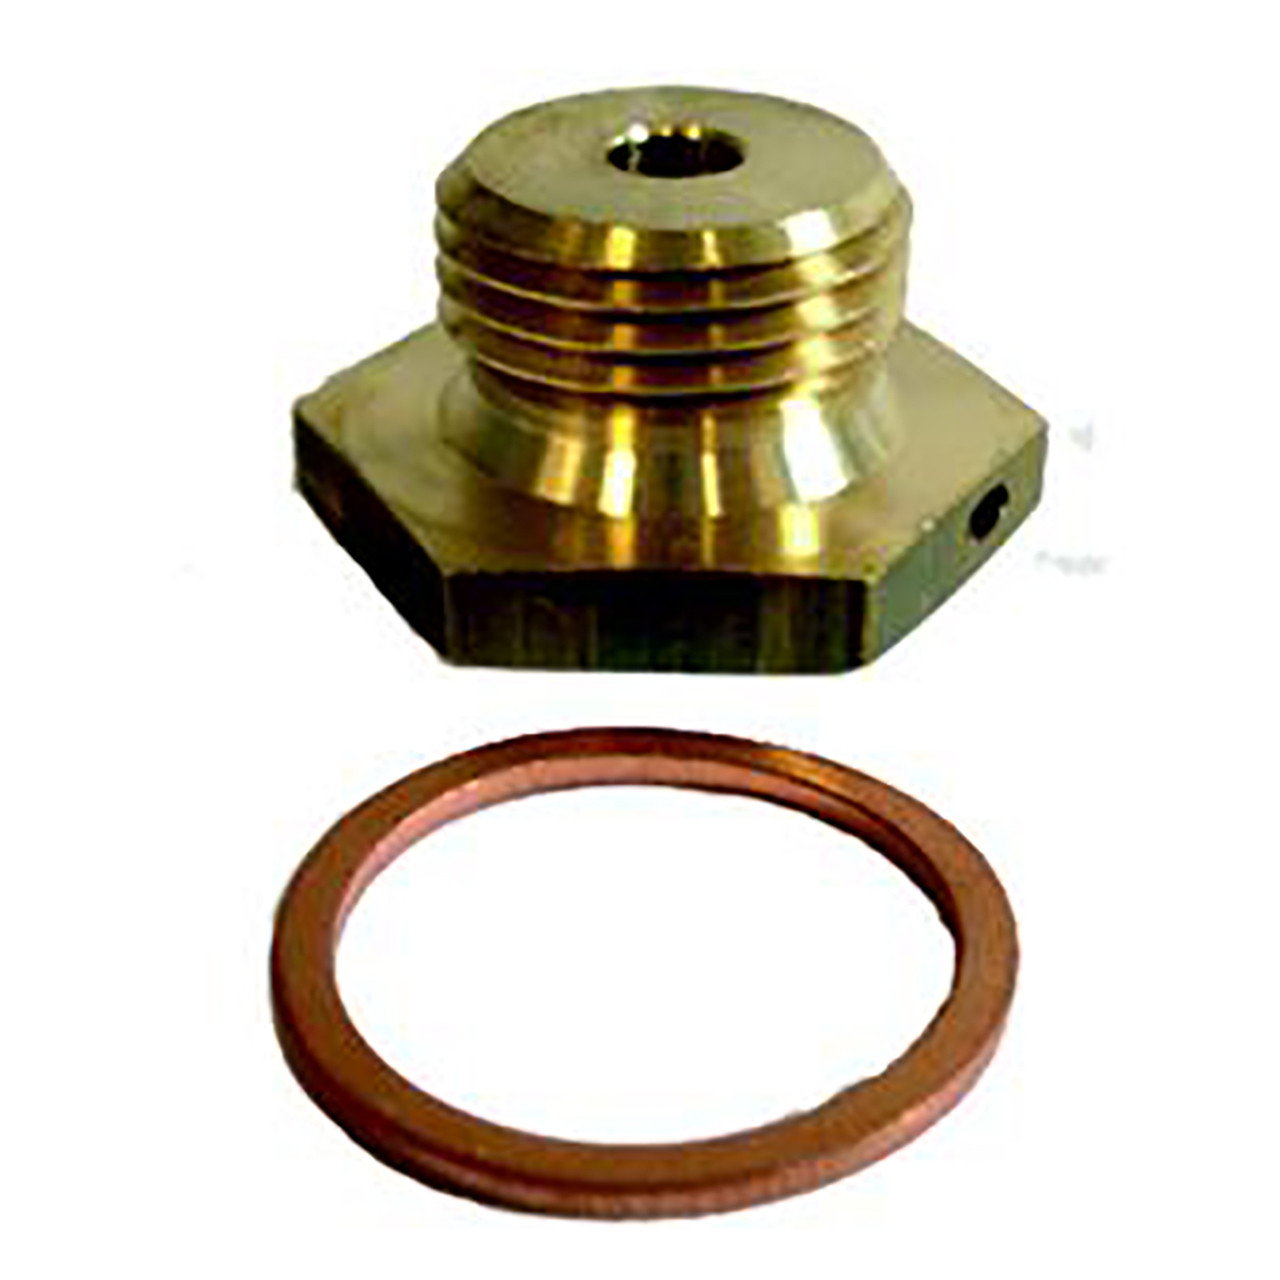 """Siemens WZT-A12, S55563-F116. Adapter G ½ B"""" with threaded hole to install sensor DS M10x1 mm, incl. gasket G ½"""""""